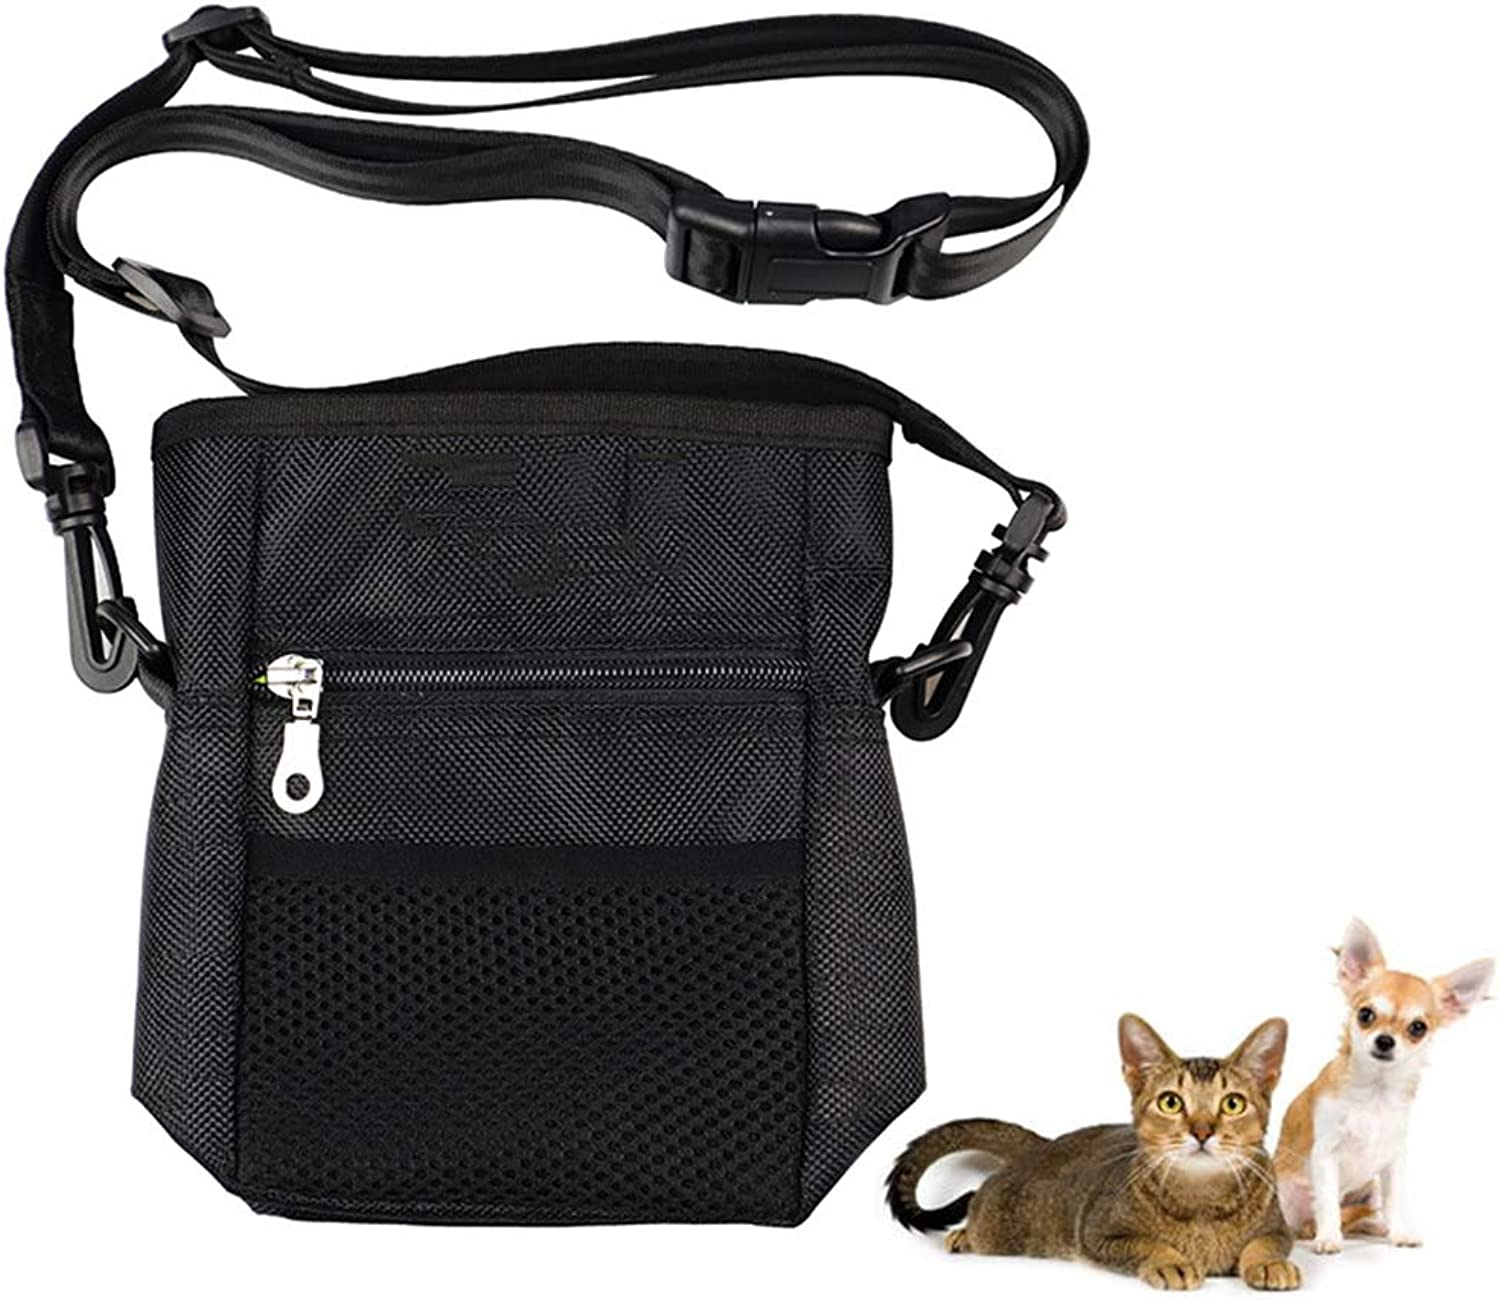 Built in Dog Waste Bag Dispenser, Dog Training Pouch Bag with Waist Shoulder Strap, It's Small and Lightweight Ensures It Works Great